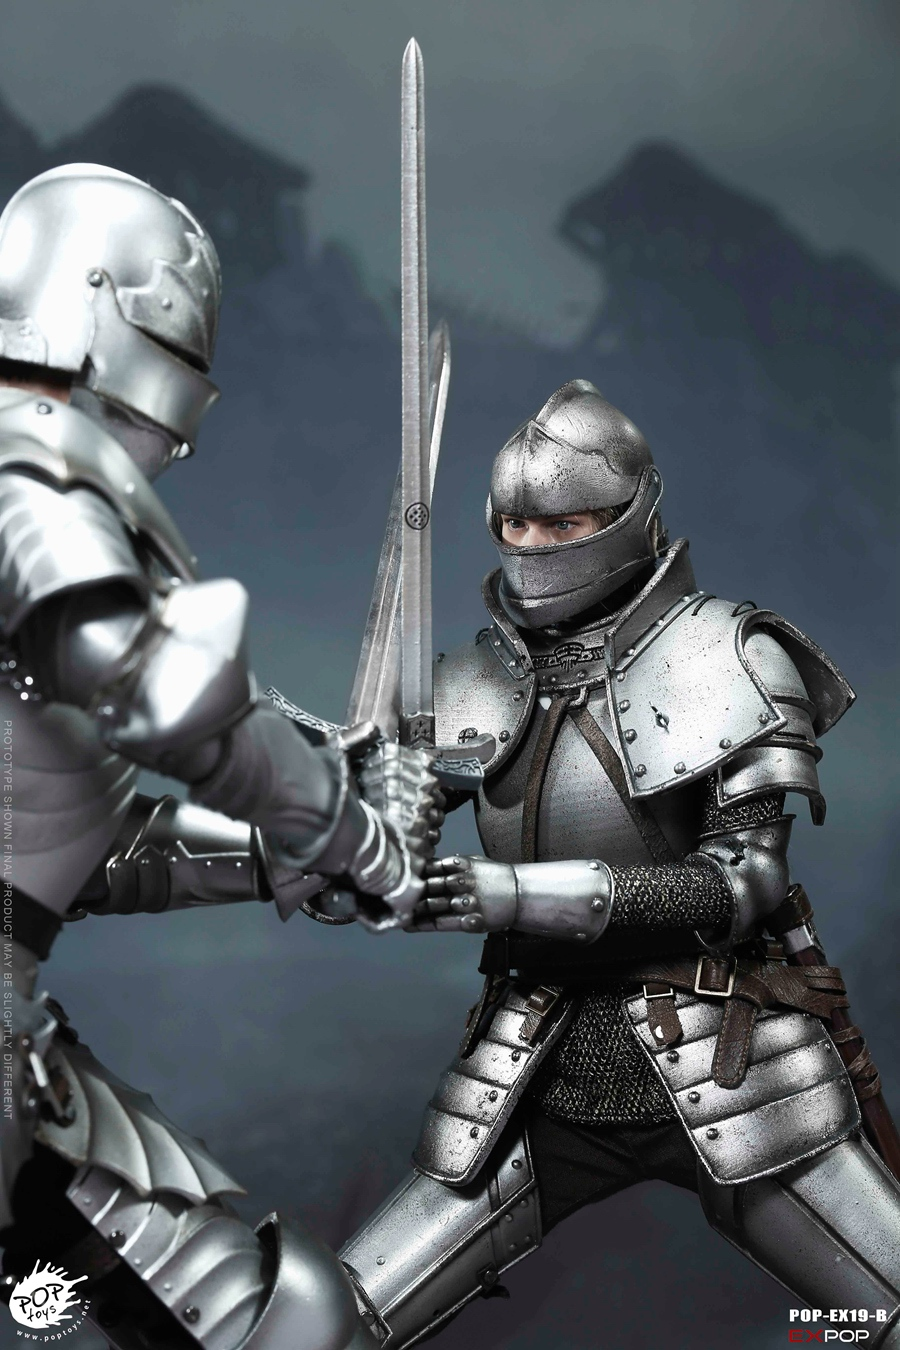 knight - NEW PRODUCT: POPTOYS New Products: 1/6 St. Knights - Assault Edition & Triumph Edition & Iron Armor (POP-EX19 ABC) 16461411